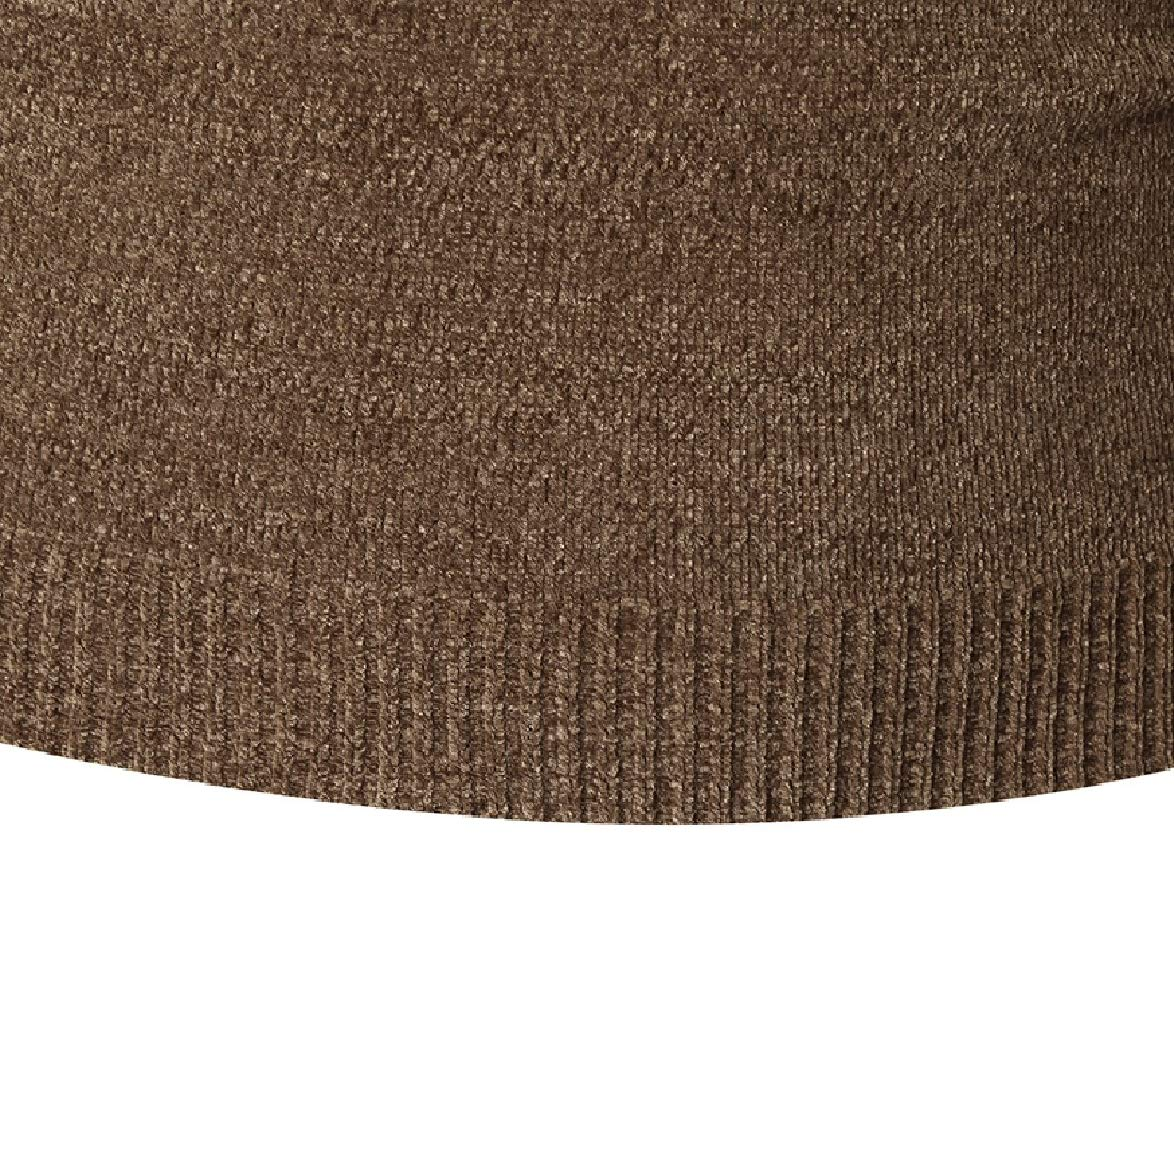 SportsX Mens Patterned Pullover Relaxed-Fit Knitting Crewneck Fall /& Winter Sweaters